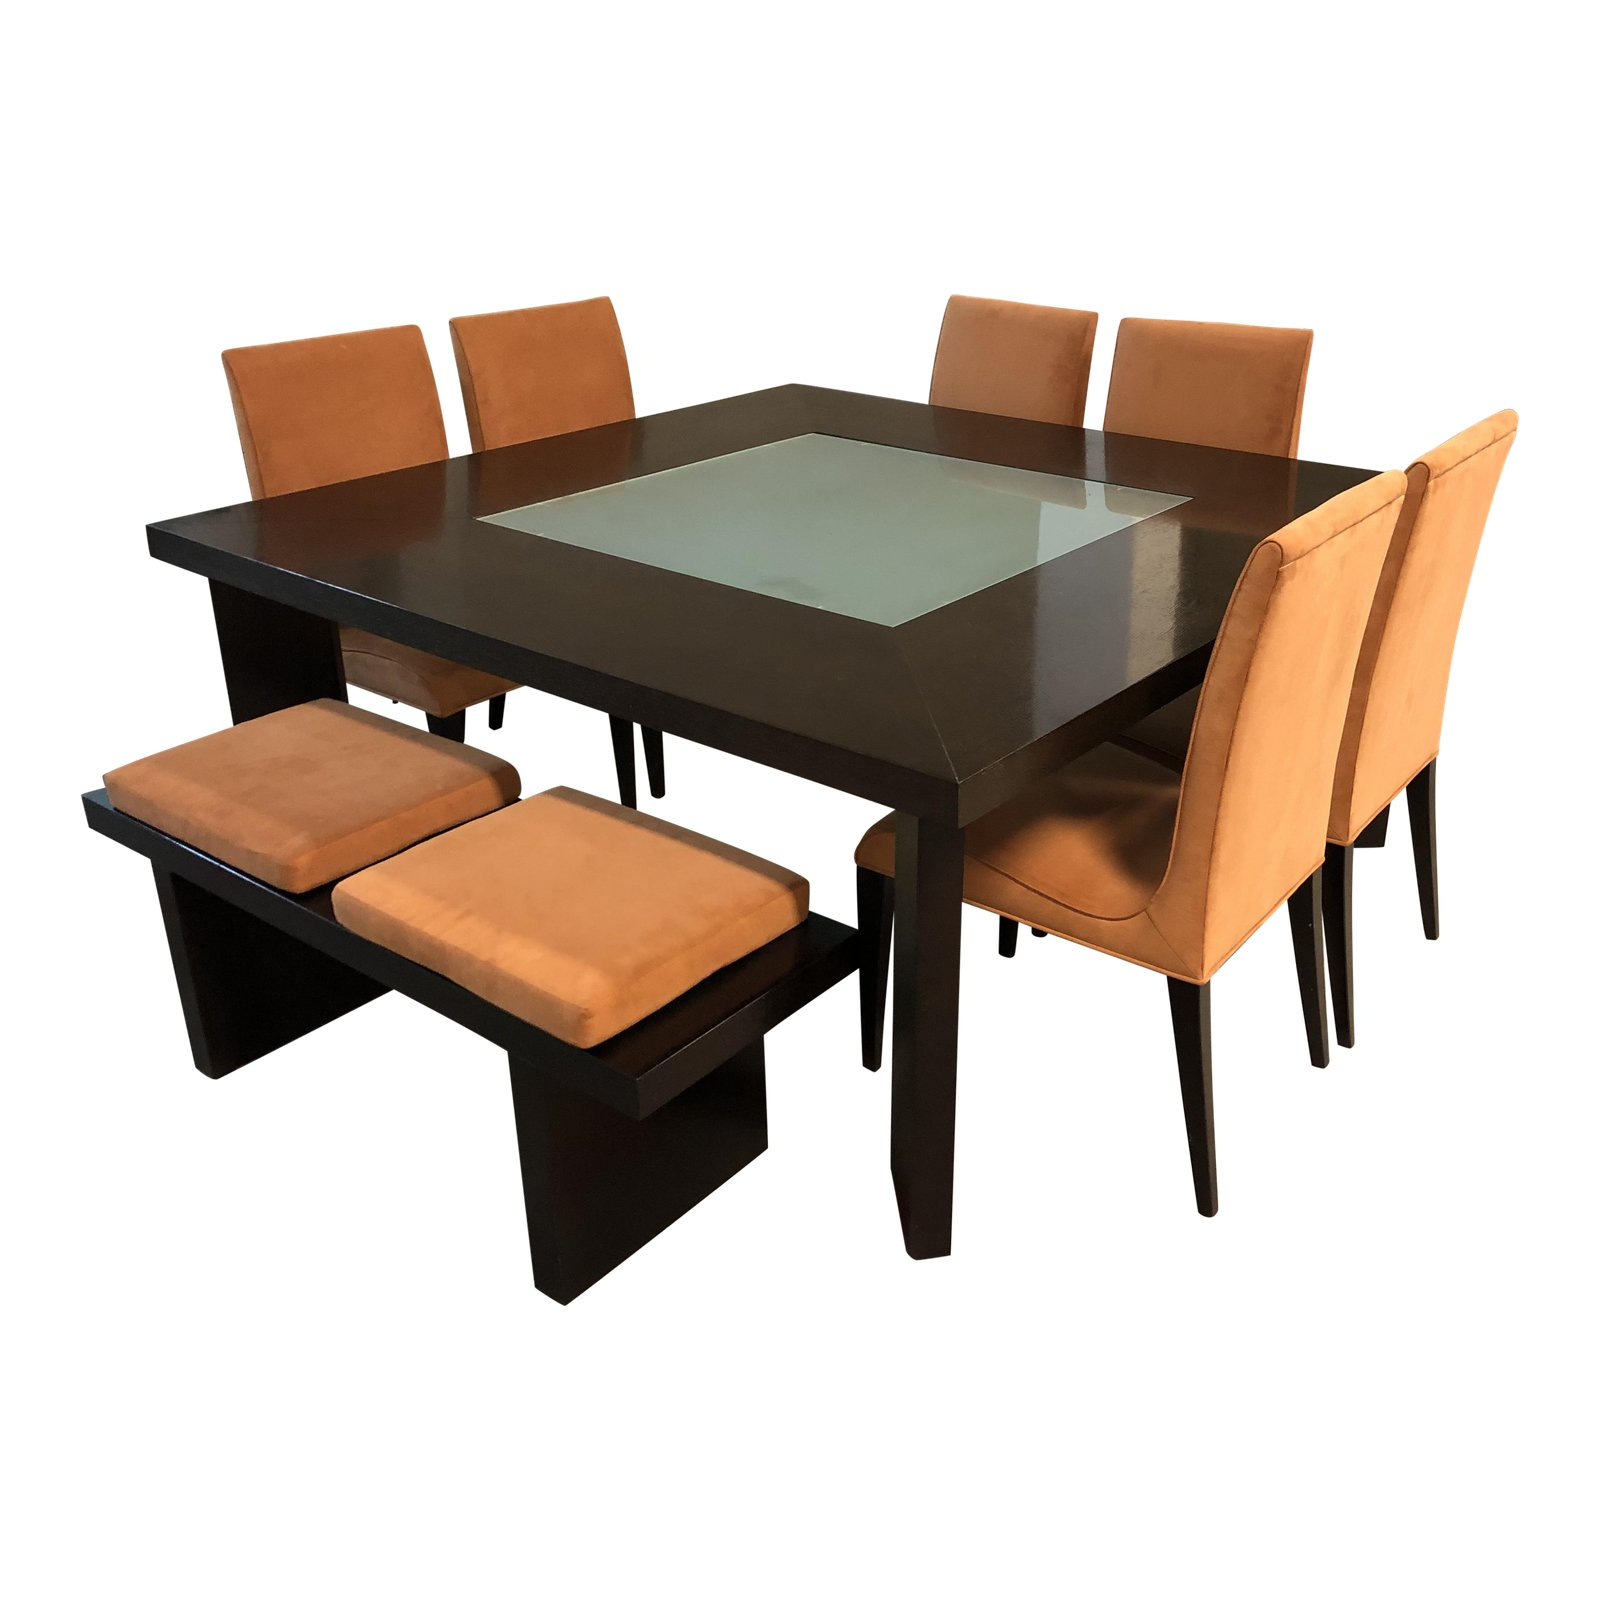 Awe Inspiring Creative Elegance Dining Table Chairs Bench Set Original Price 8 520 Ncnpc Chair Design For Home Ncnpcorg